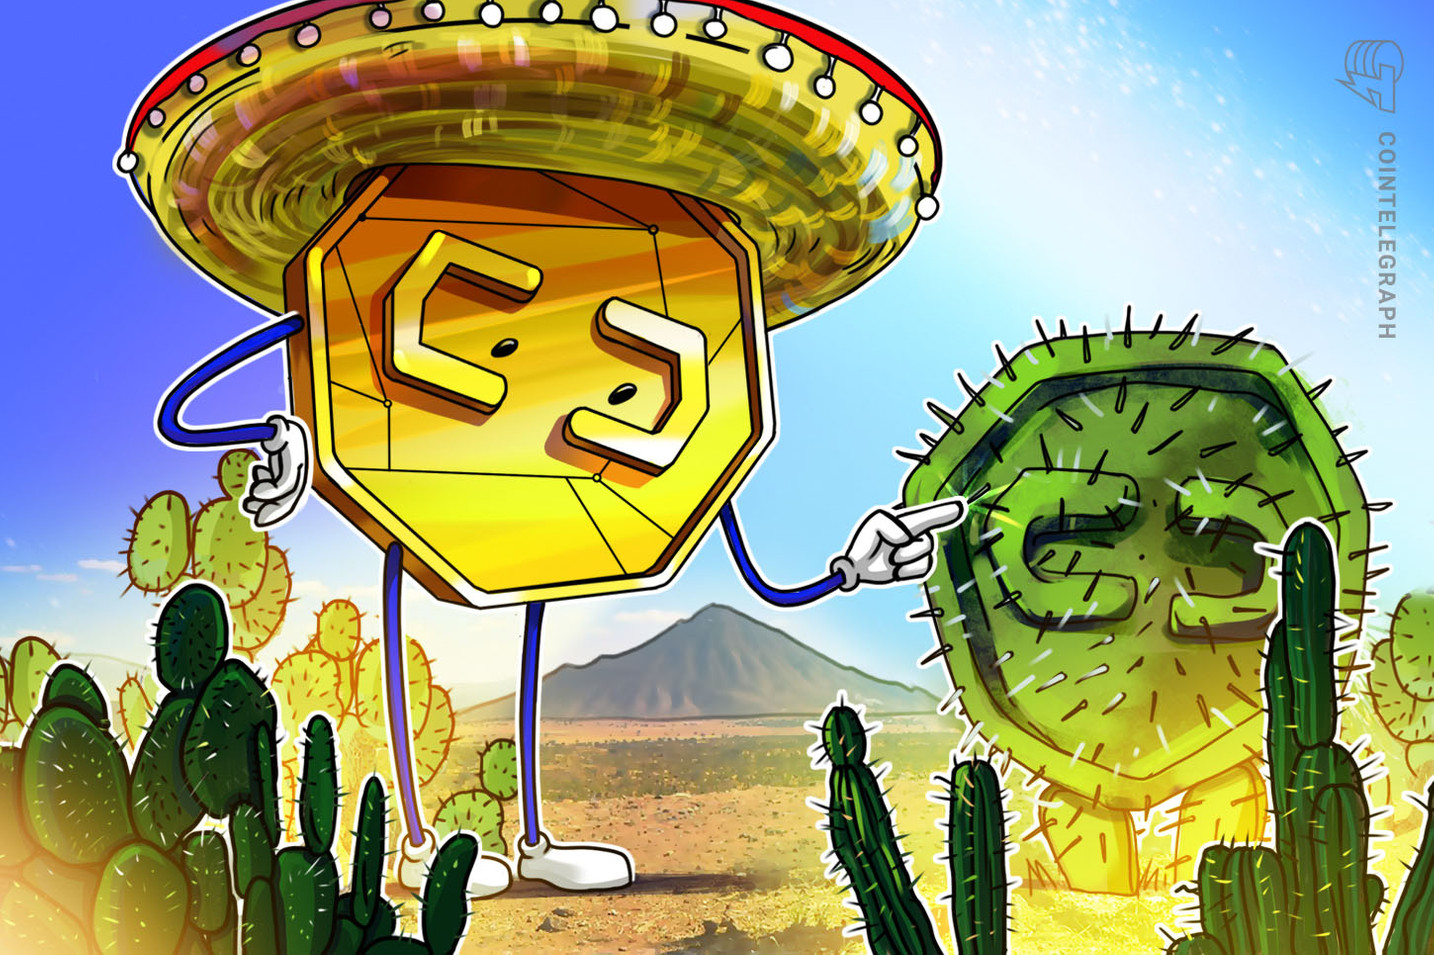 Mexico's president   rules retired  accepting crypto arsenic  ineligible  tender